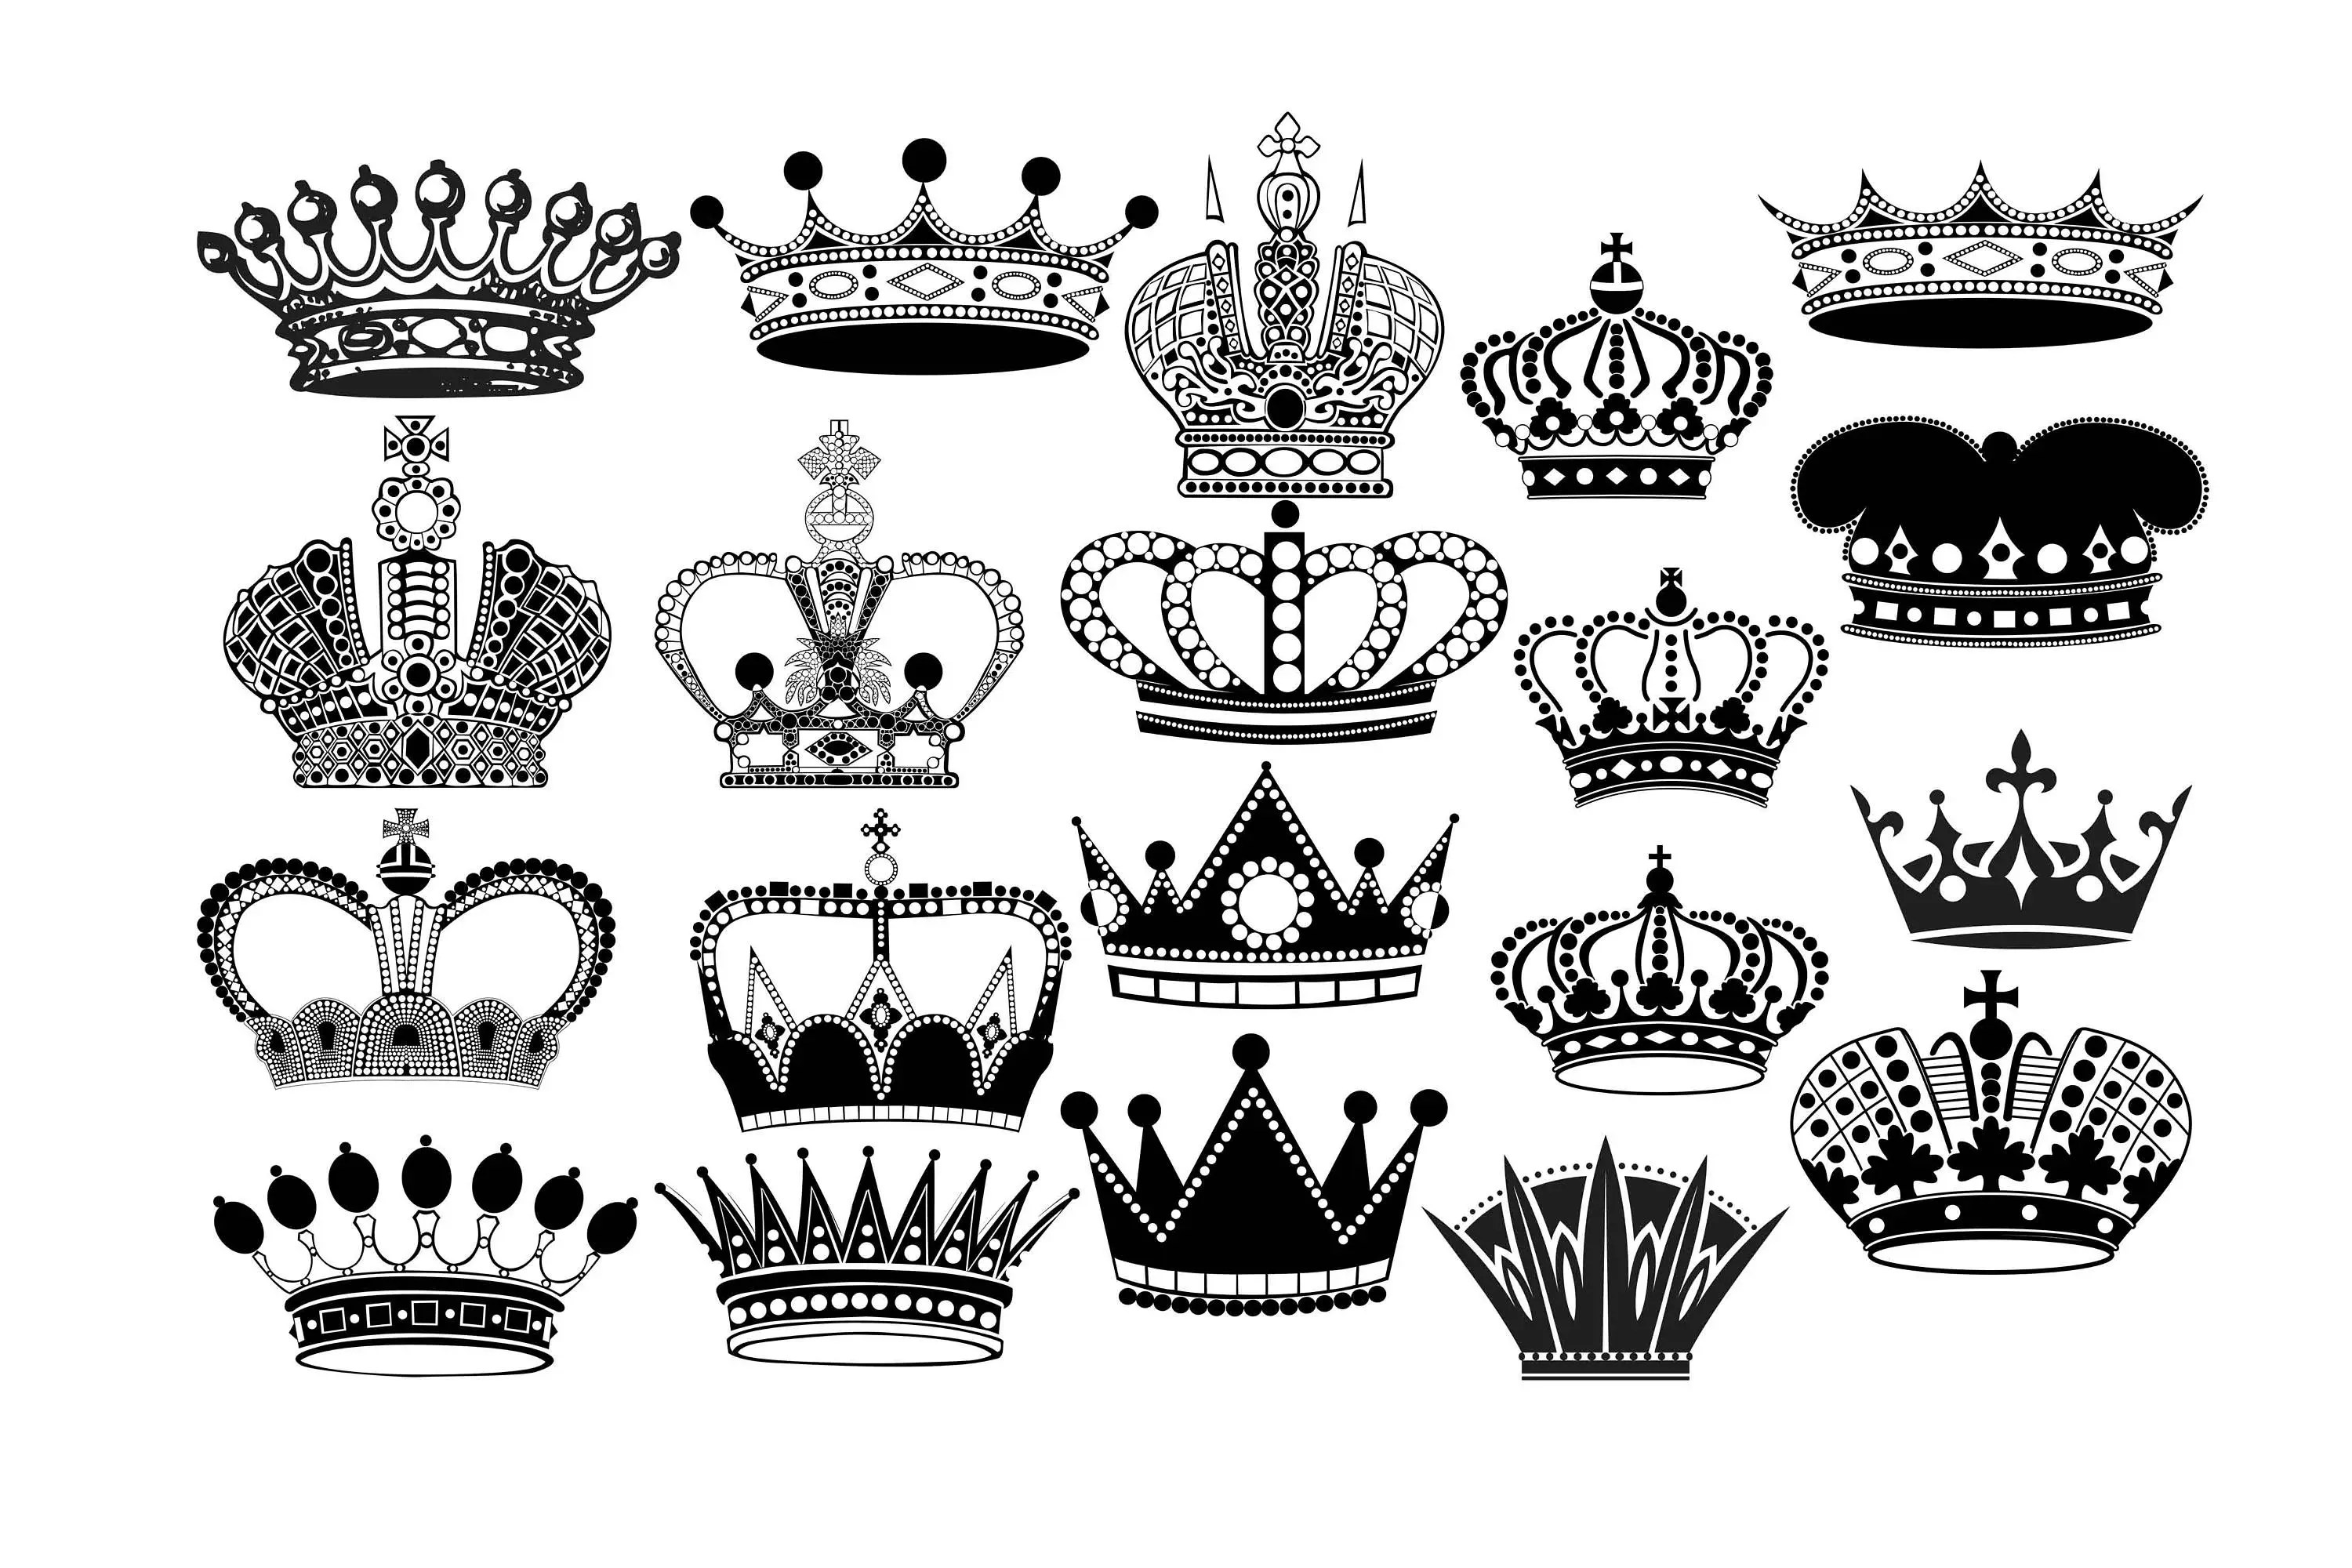 Crown Silhouette Crown Clipart Royal Crown Clip Art King